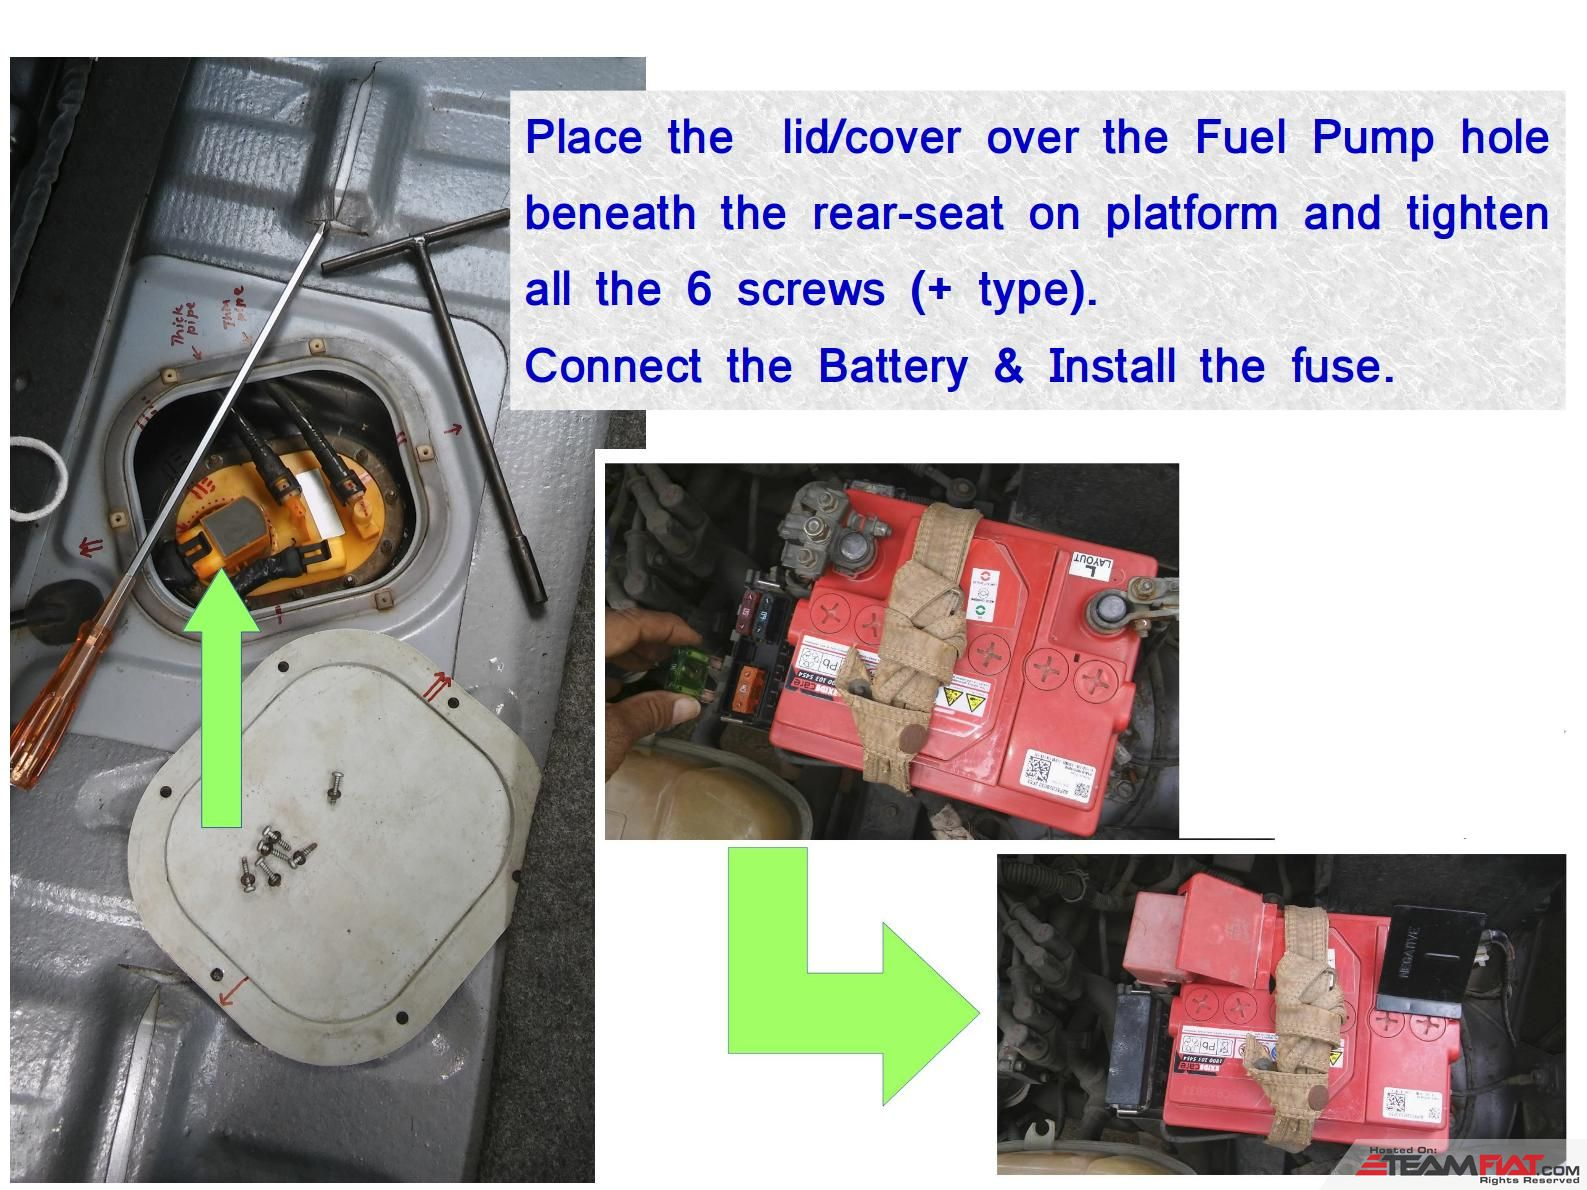 011-Place Lid & Connect battery and Fuse.jpg